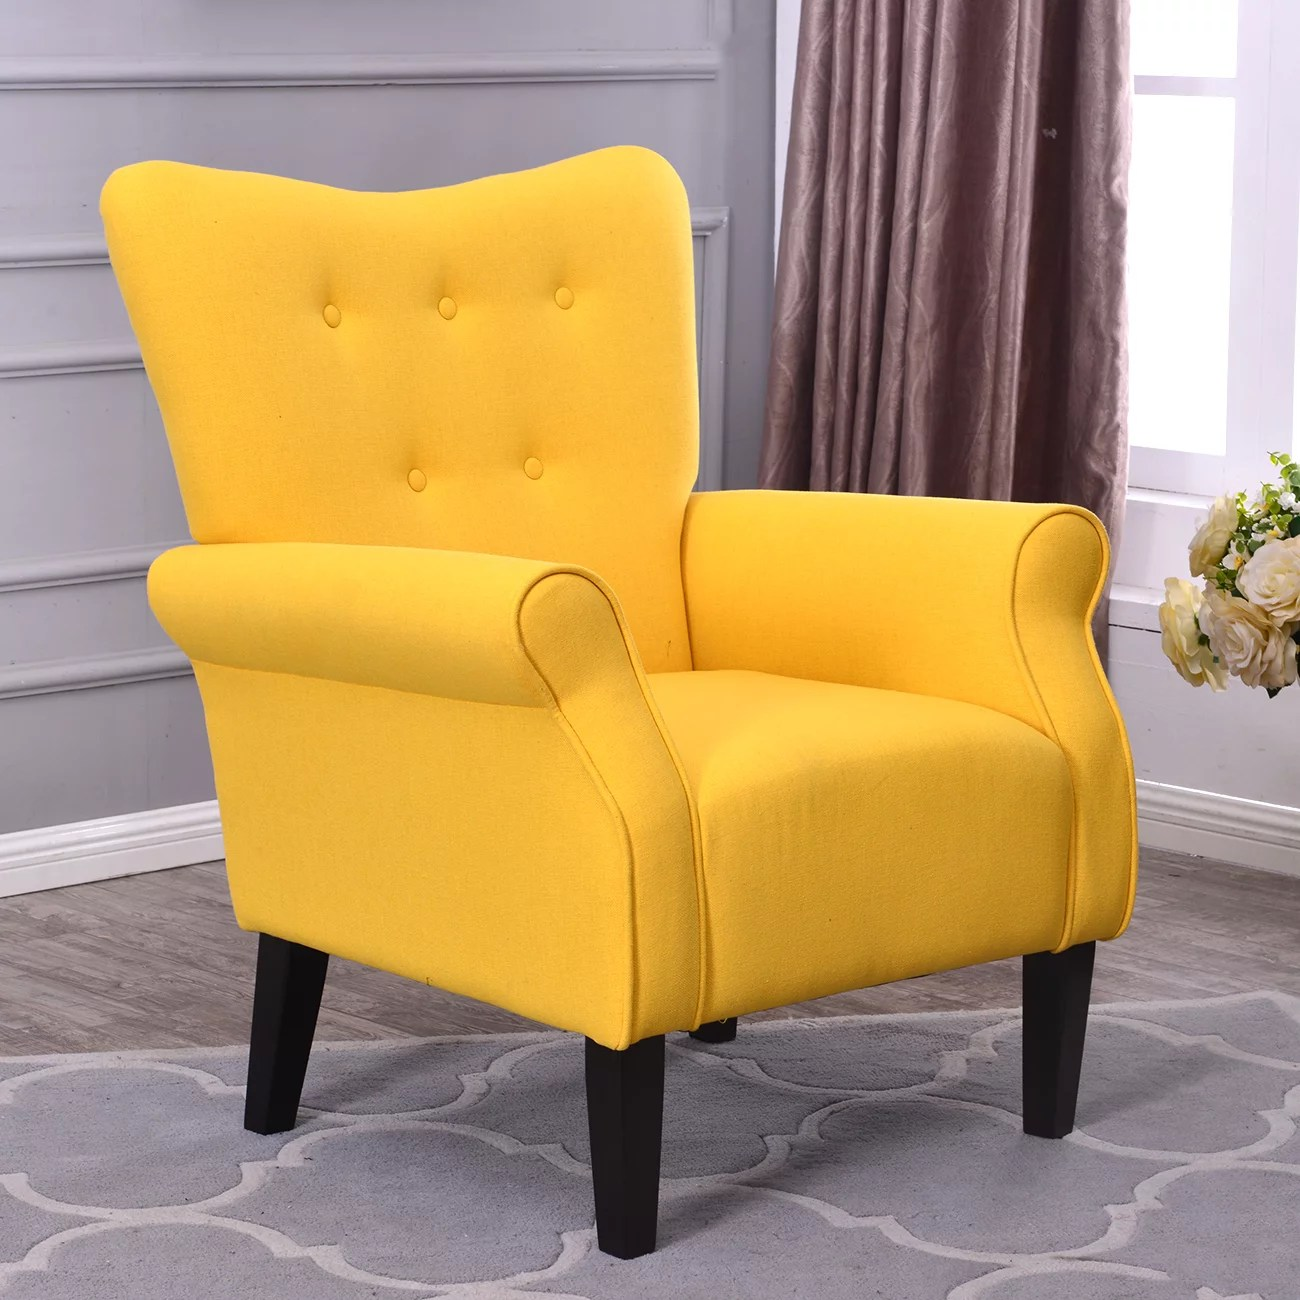 Wood Club Chair Belleze Modern Accent Chair Roll Arm Linen Living Room Bedroom Wood Leg Citrine Yellow